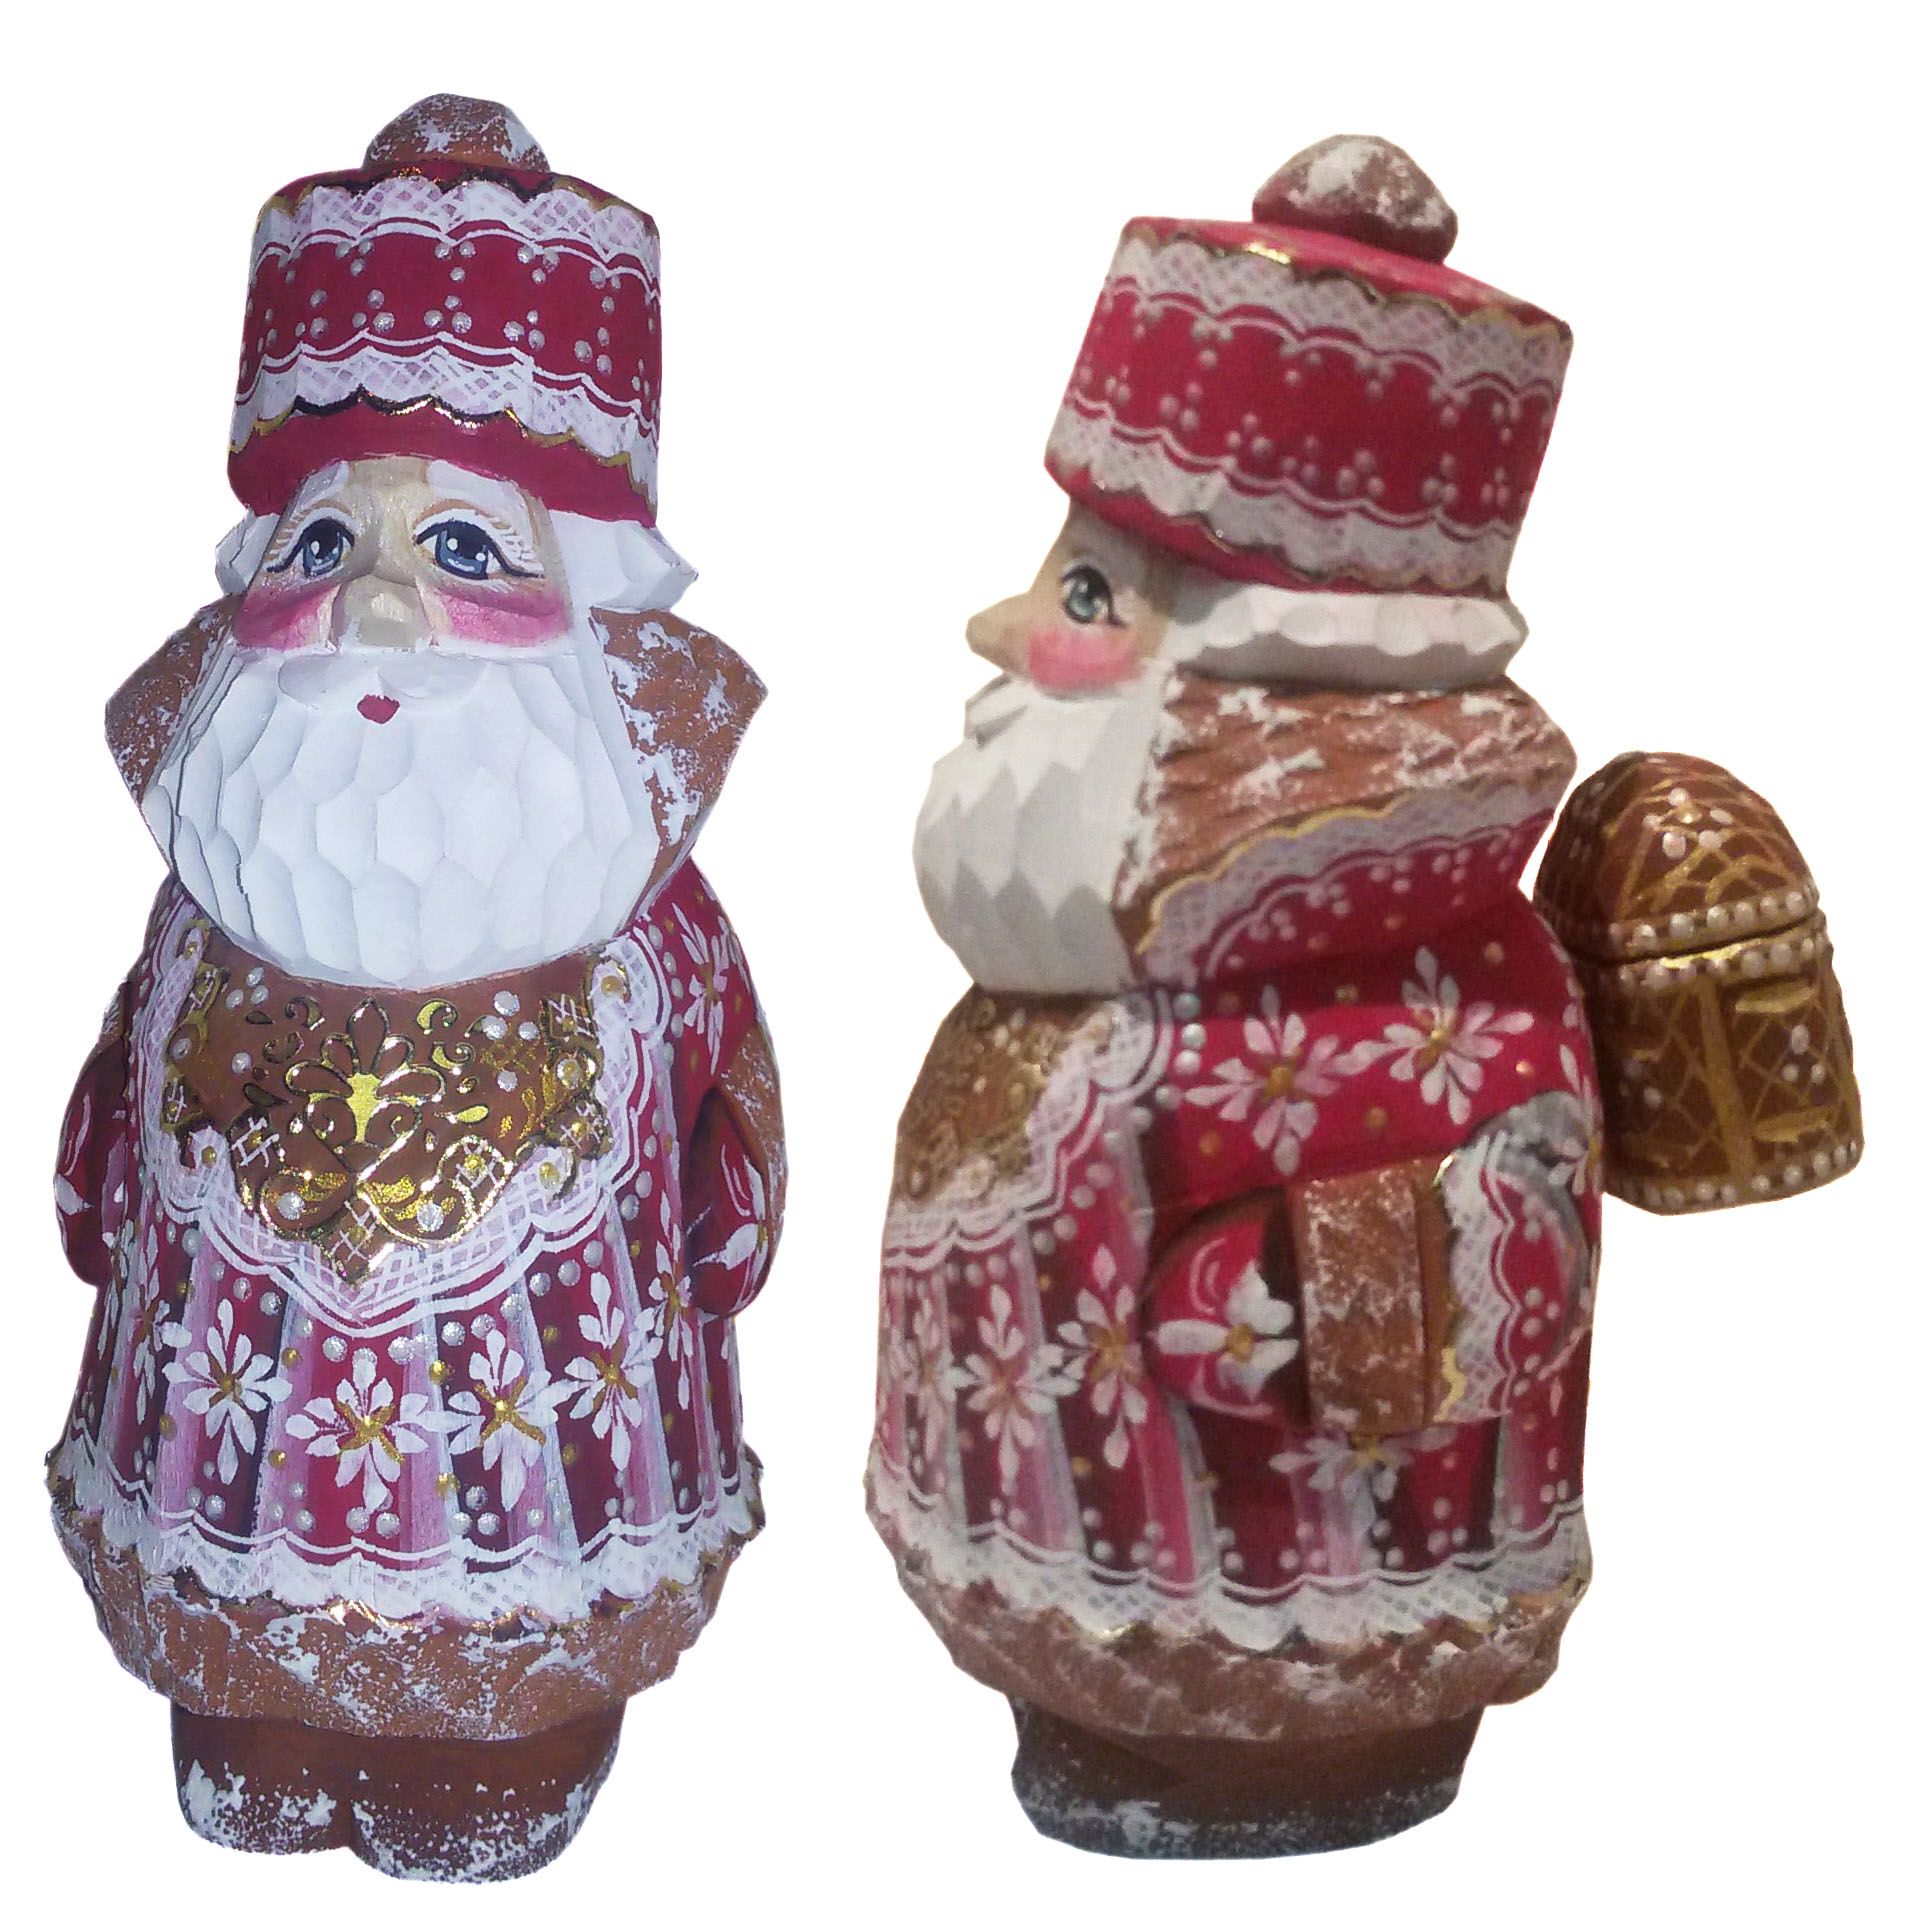 CK_ish8502 Traditionally hand carved of wood from linden tree and hand painted Santa Claus (15-16 cm)